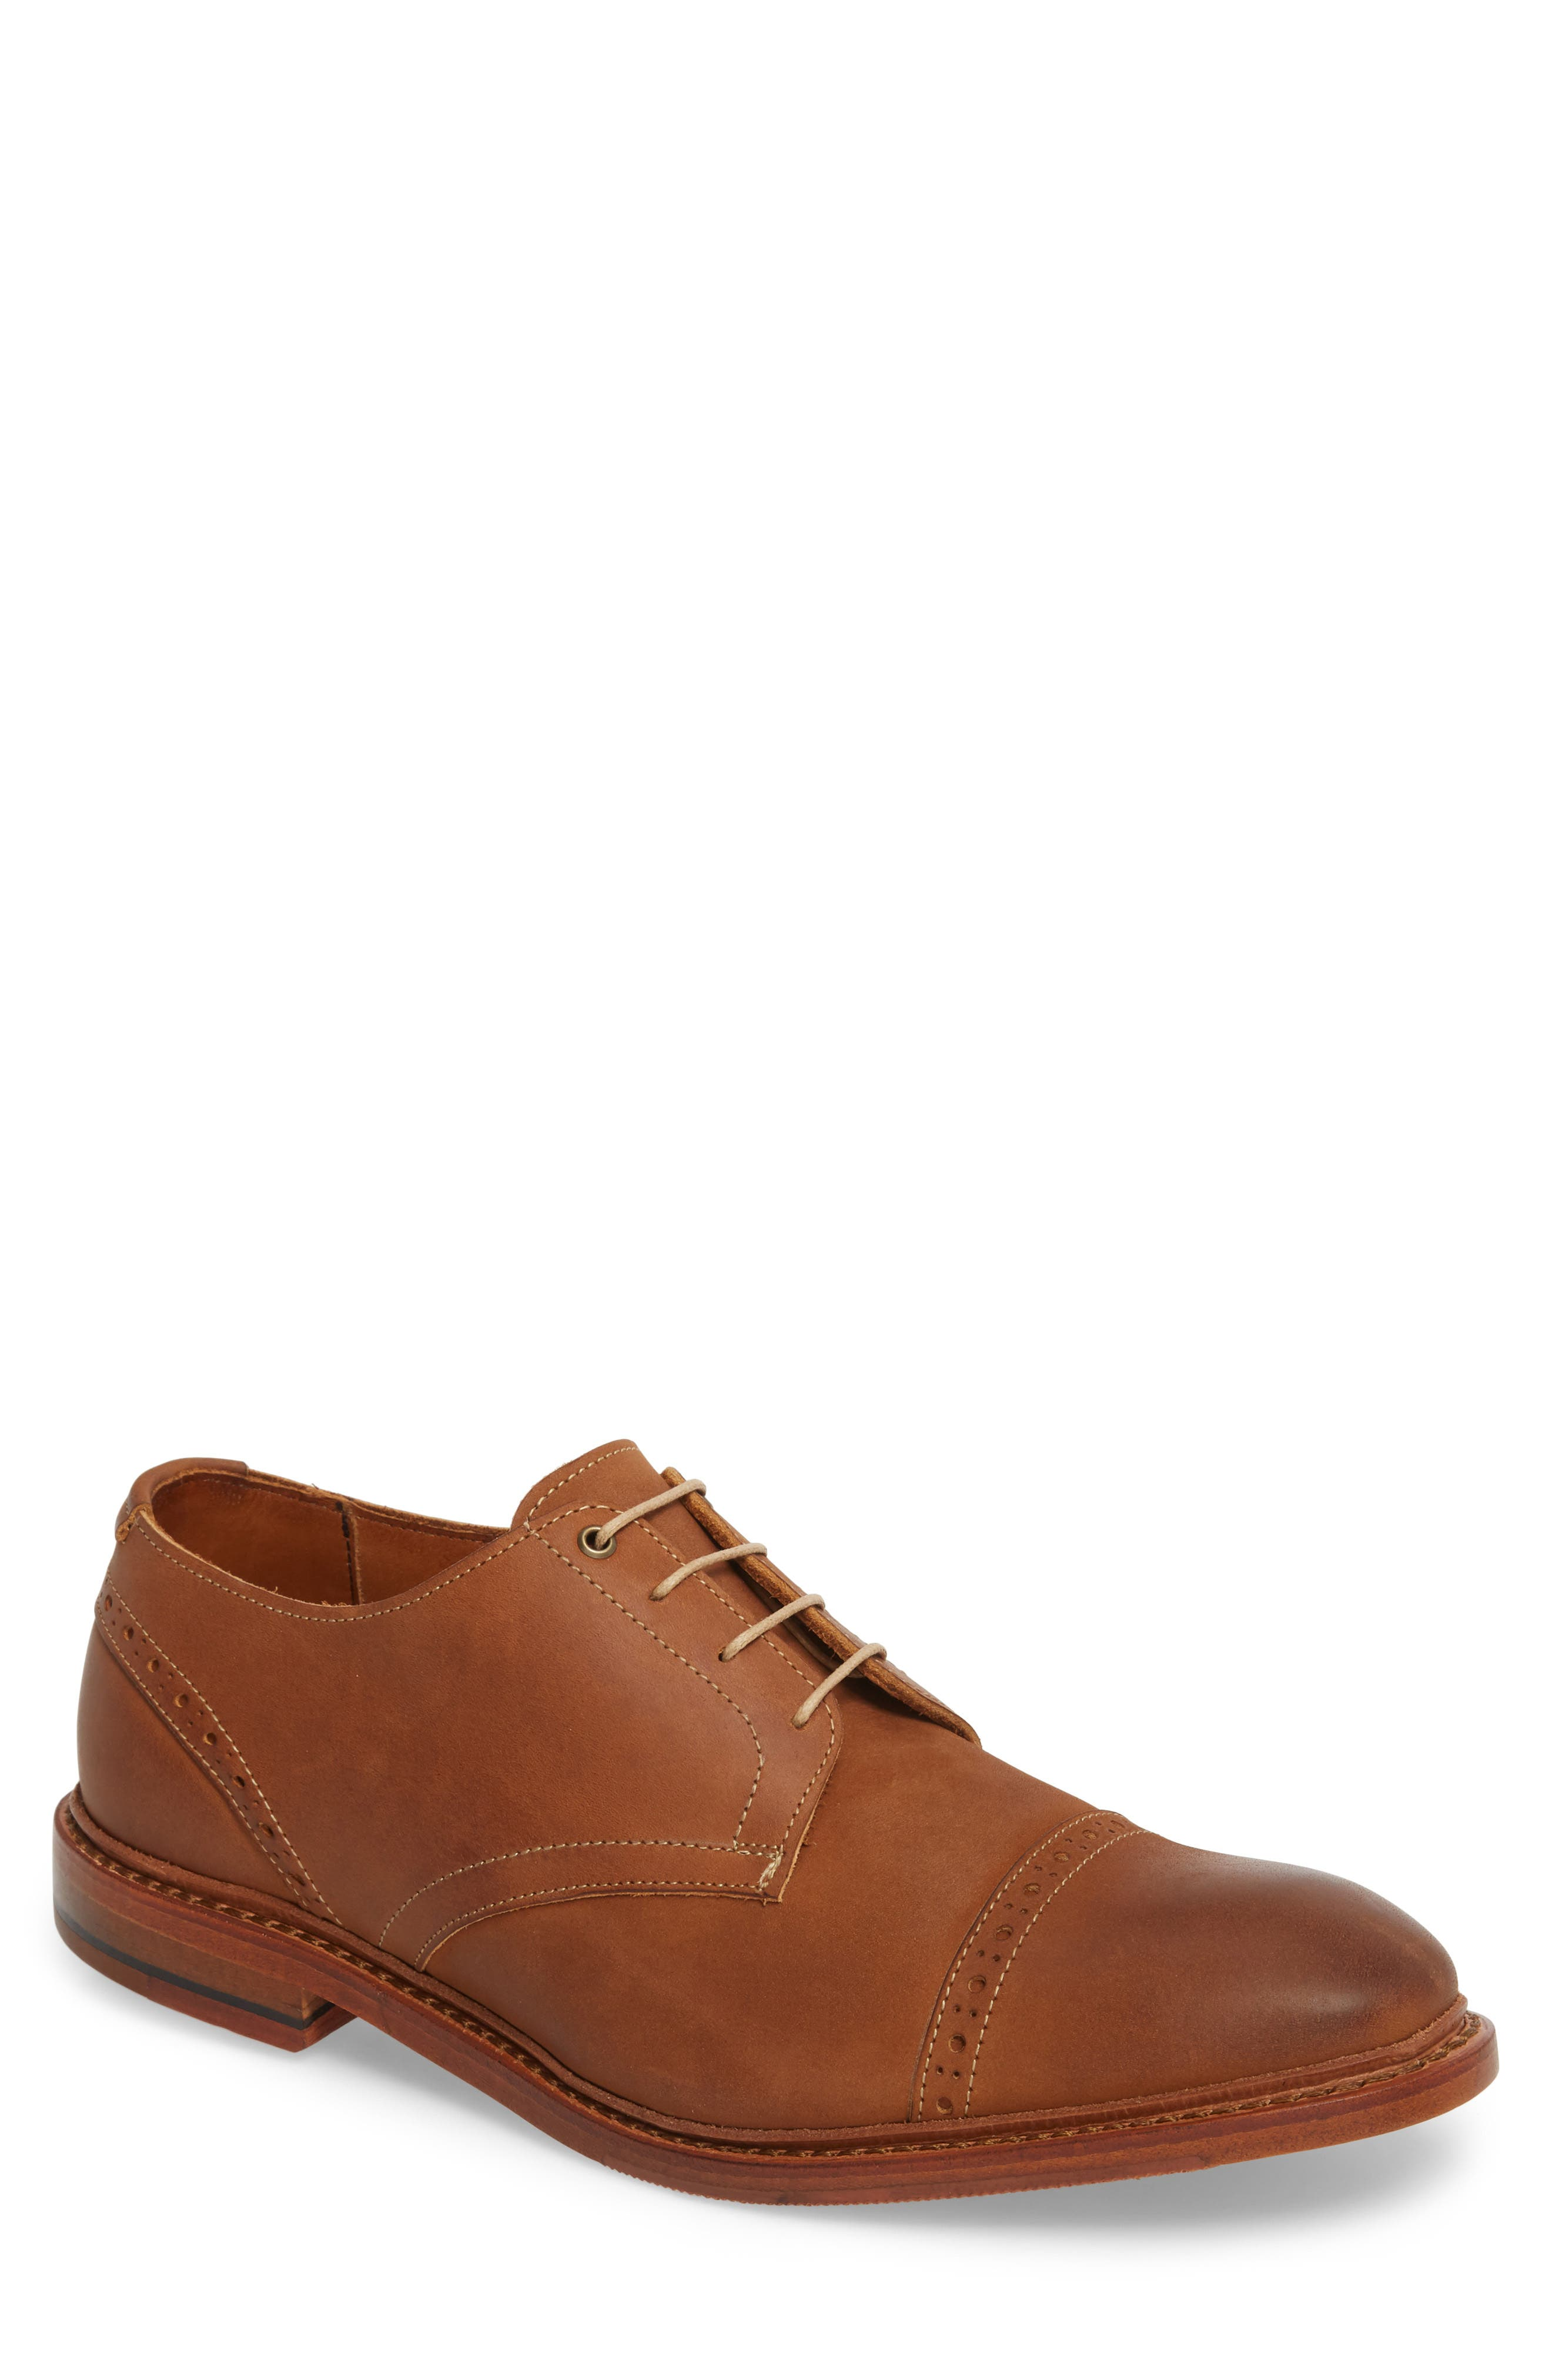 Kitsap Cap Toe Derby,                         Main,                         color, TAN LEATHER